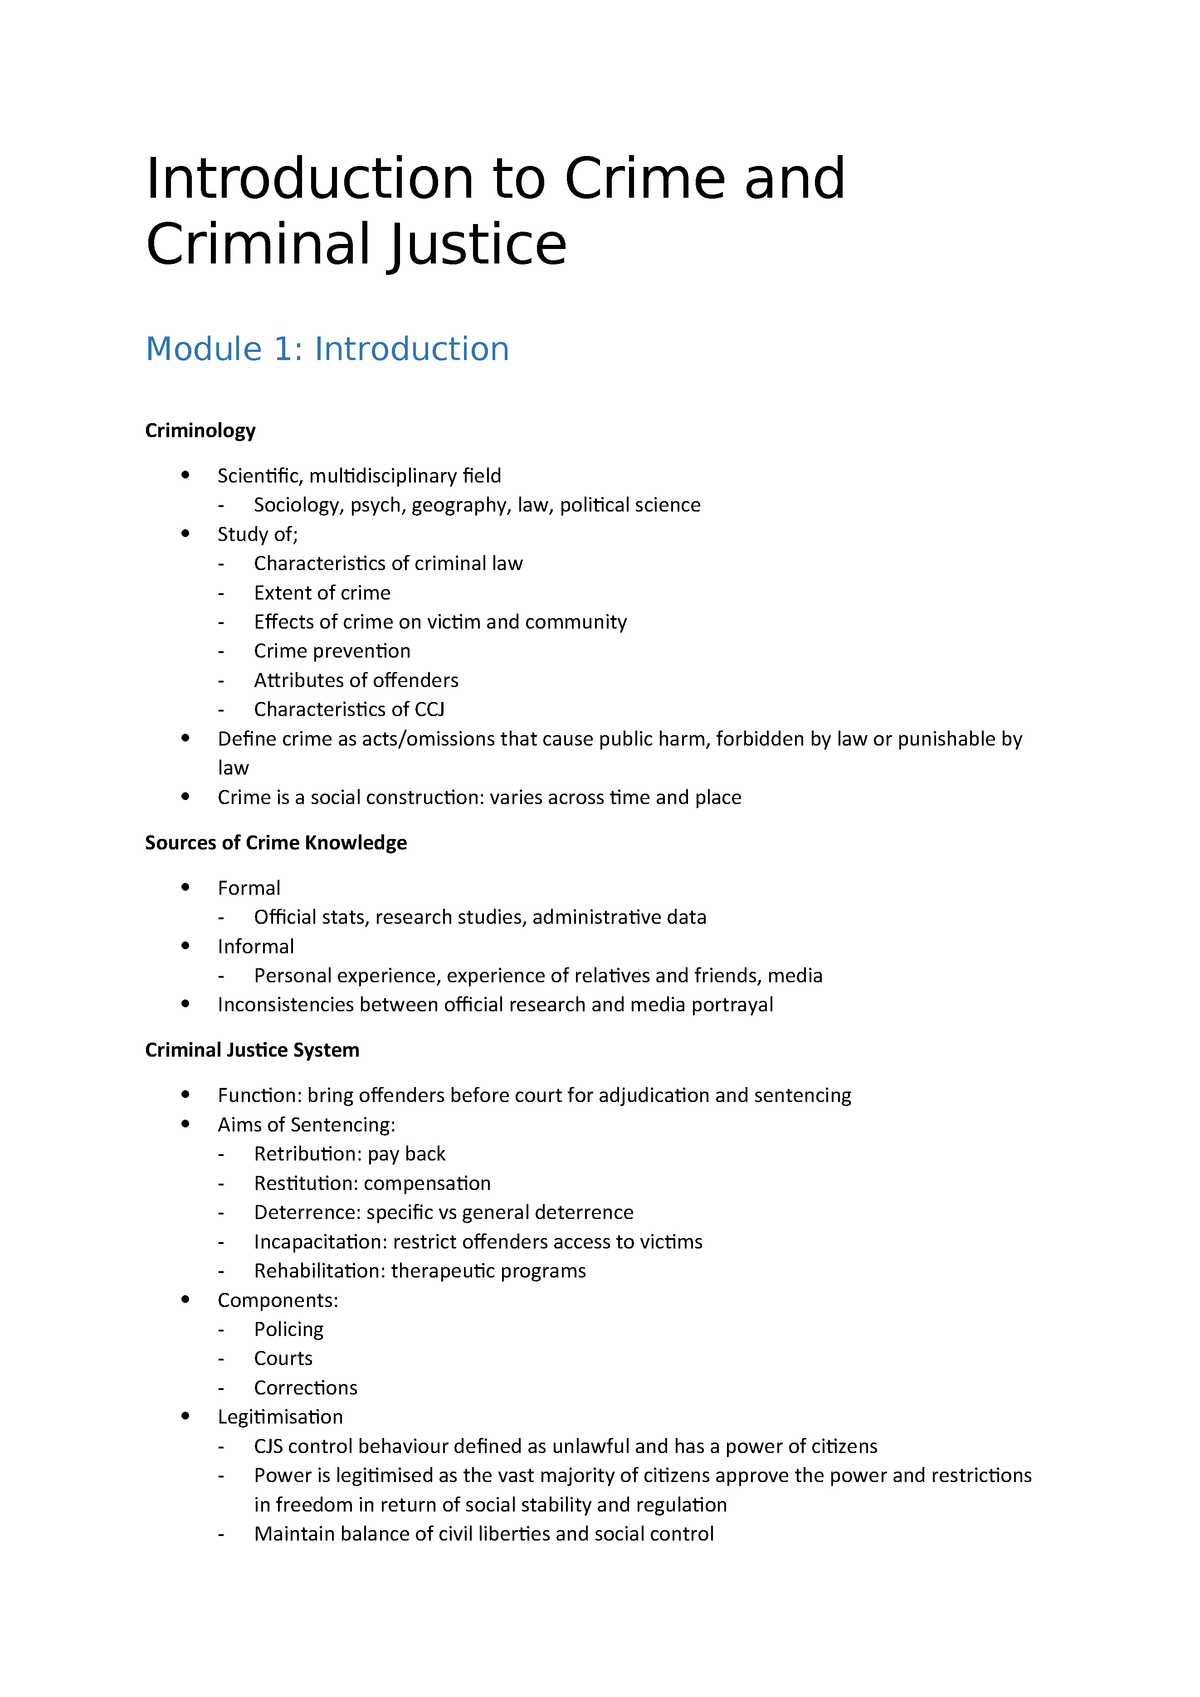 Introduction To Criminology & Criminal Justice - Lecture notes